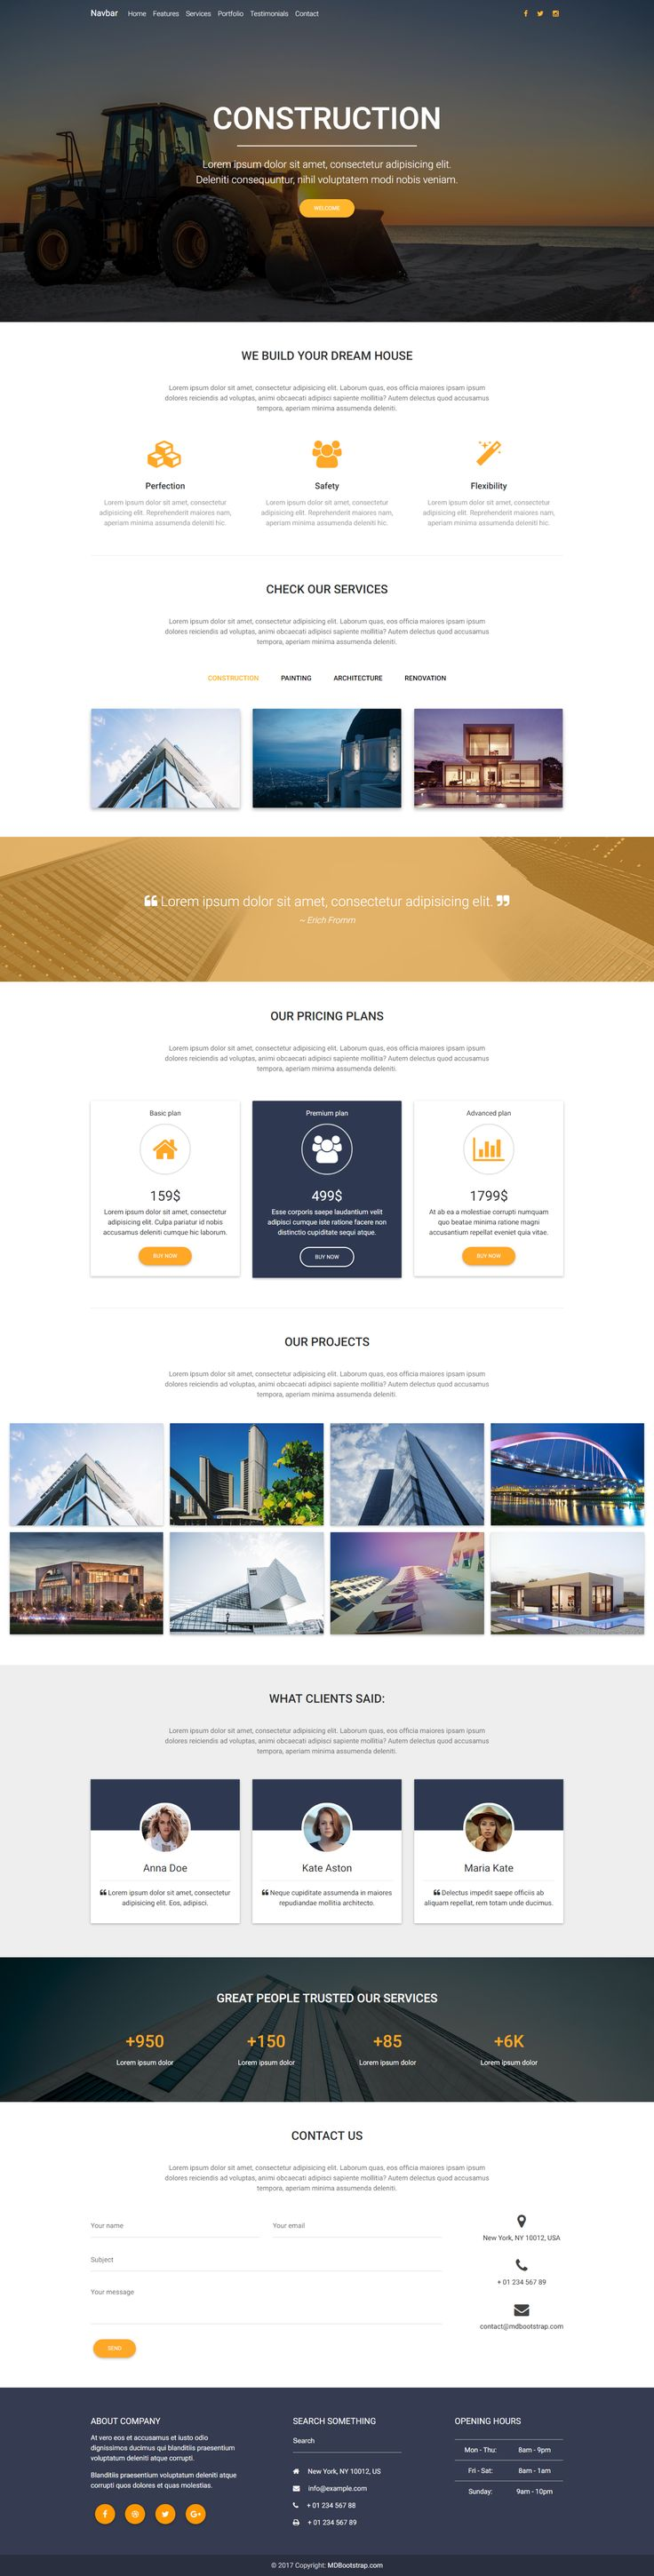 Construction Landing Page Template, perfect for businesses related to architecture